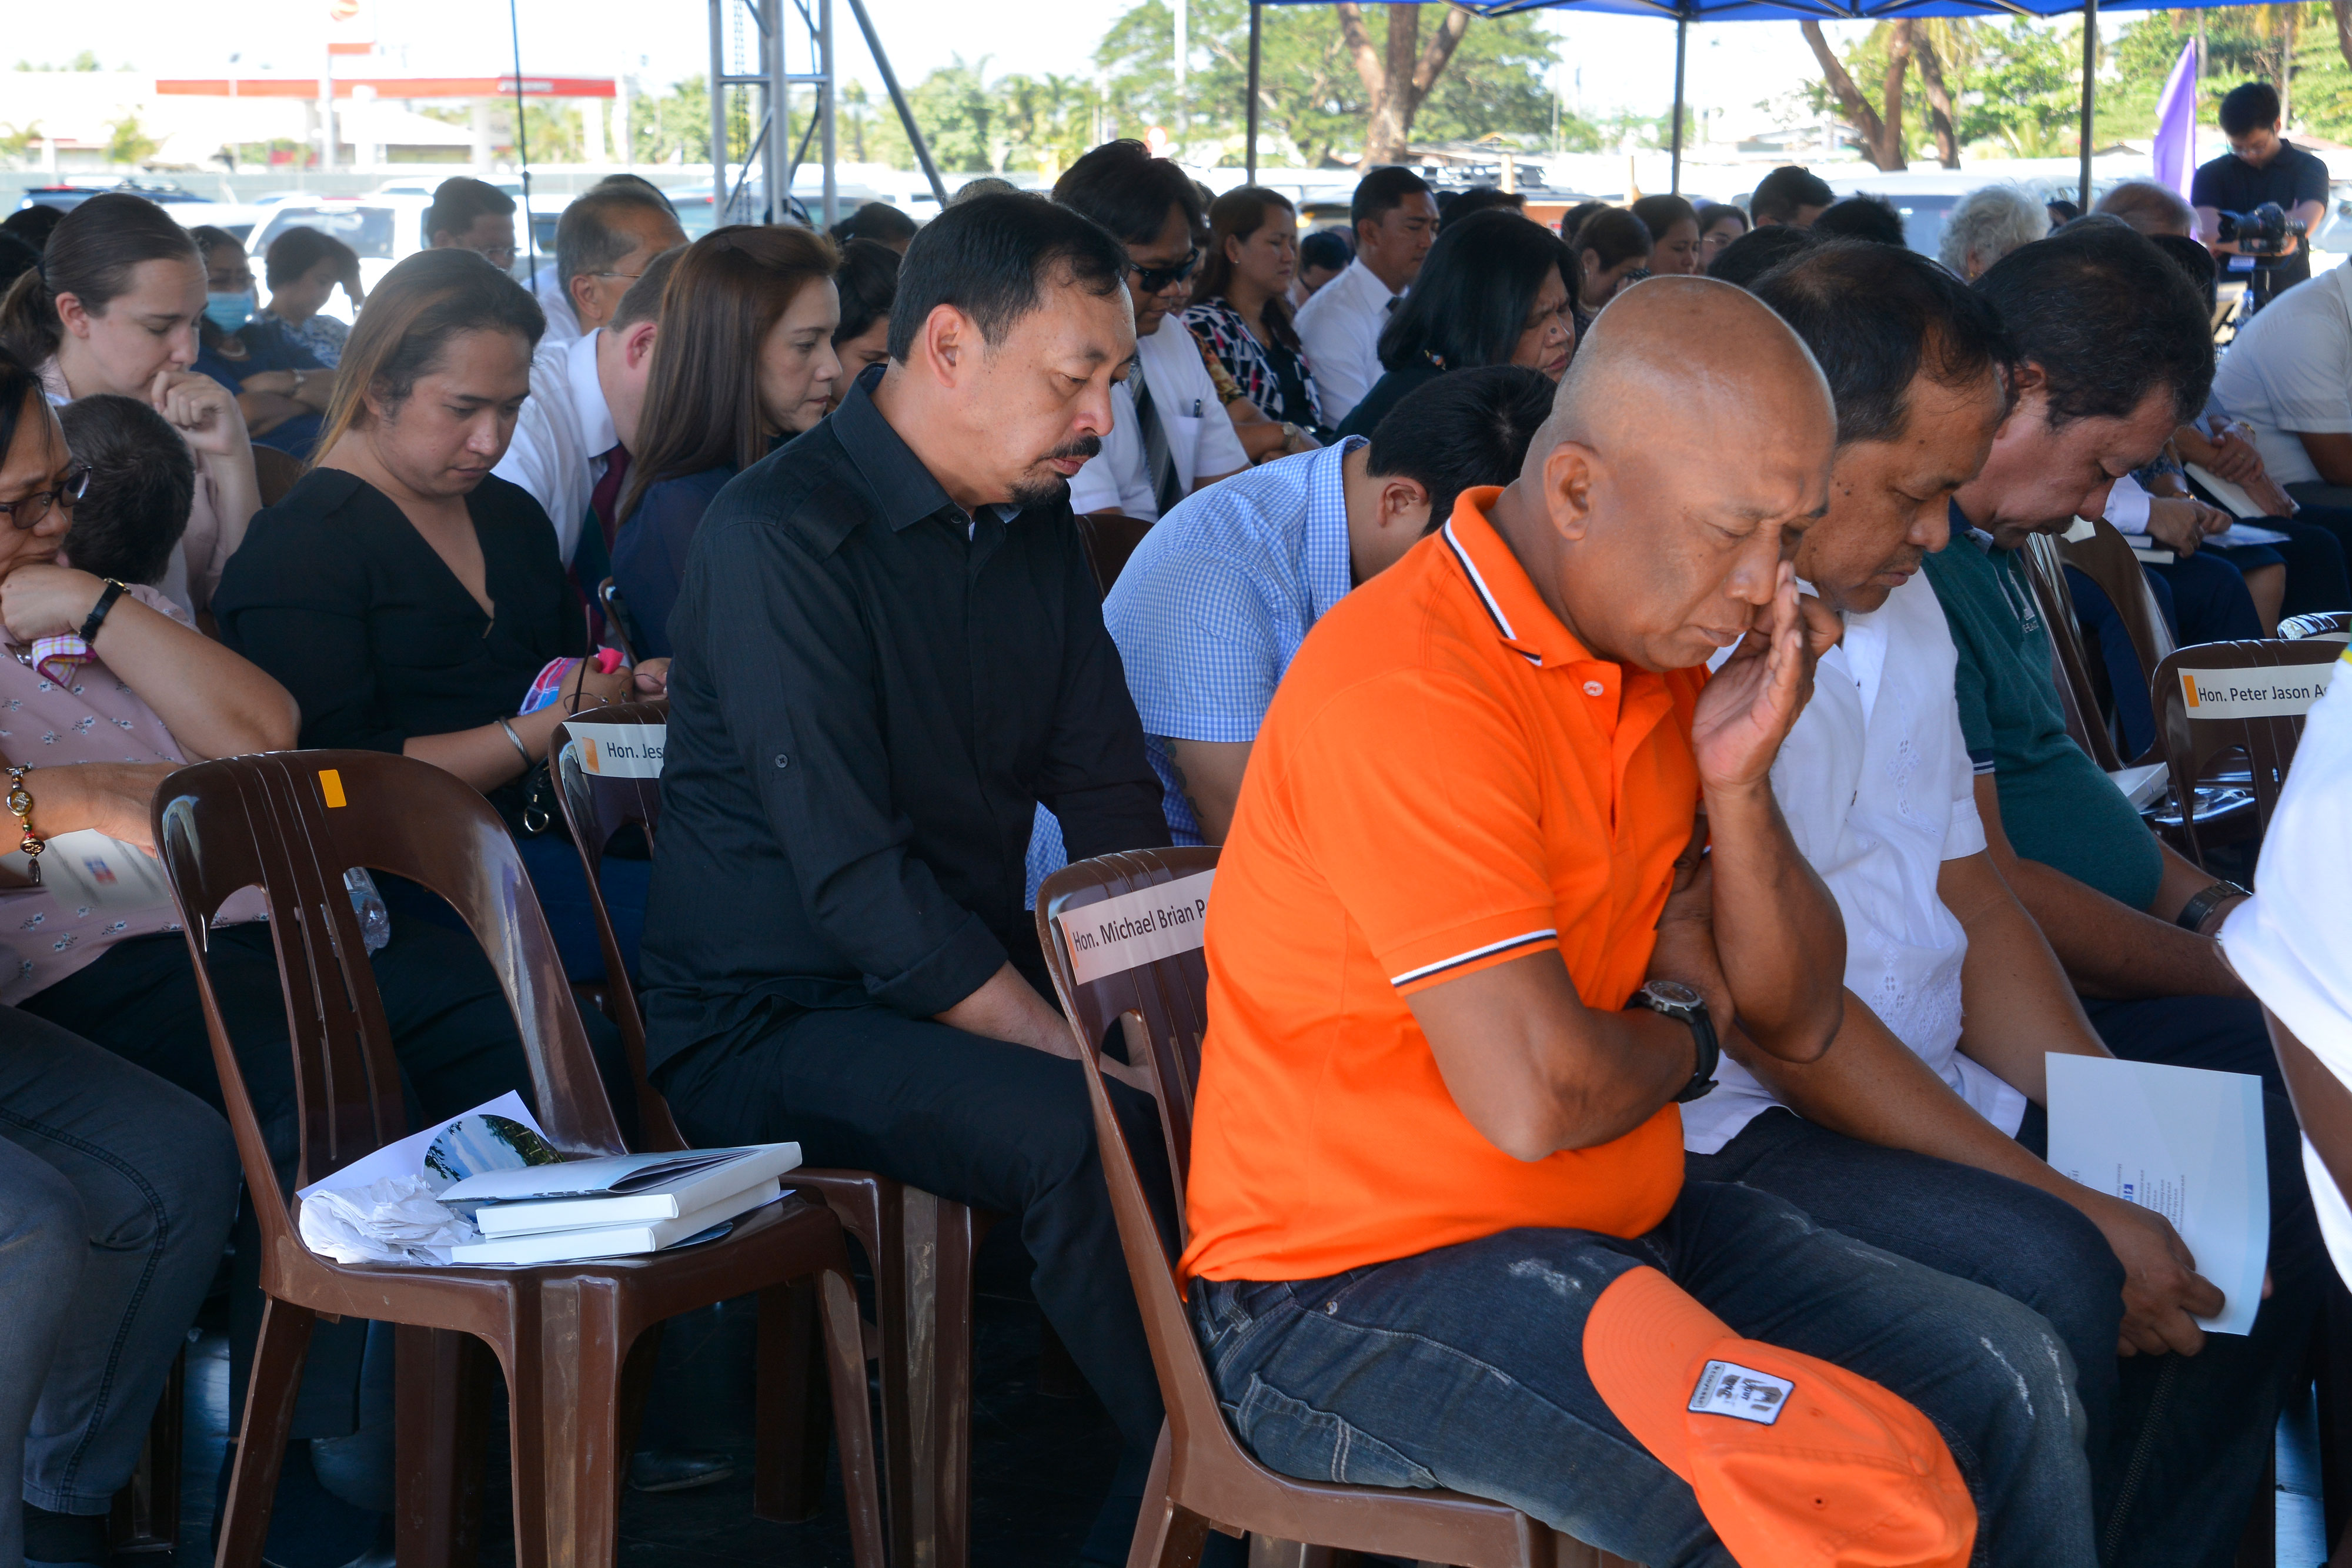 Church members gather at the site of the future Urdaneta Philippines Temple on Jan. 16, 2019. Elder Jeffrey R. Holland of the Quorum of the Twelve Apostles broke ground for the new temple, the third in the Philippines.